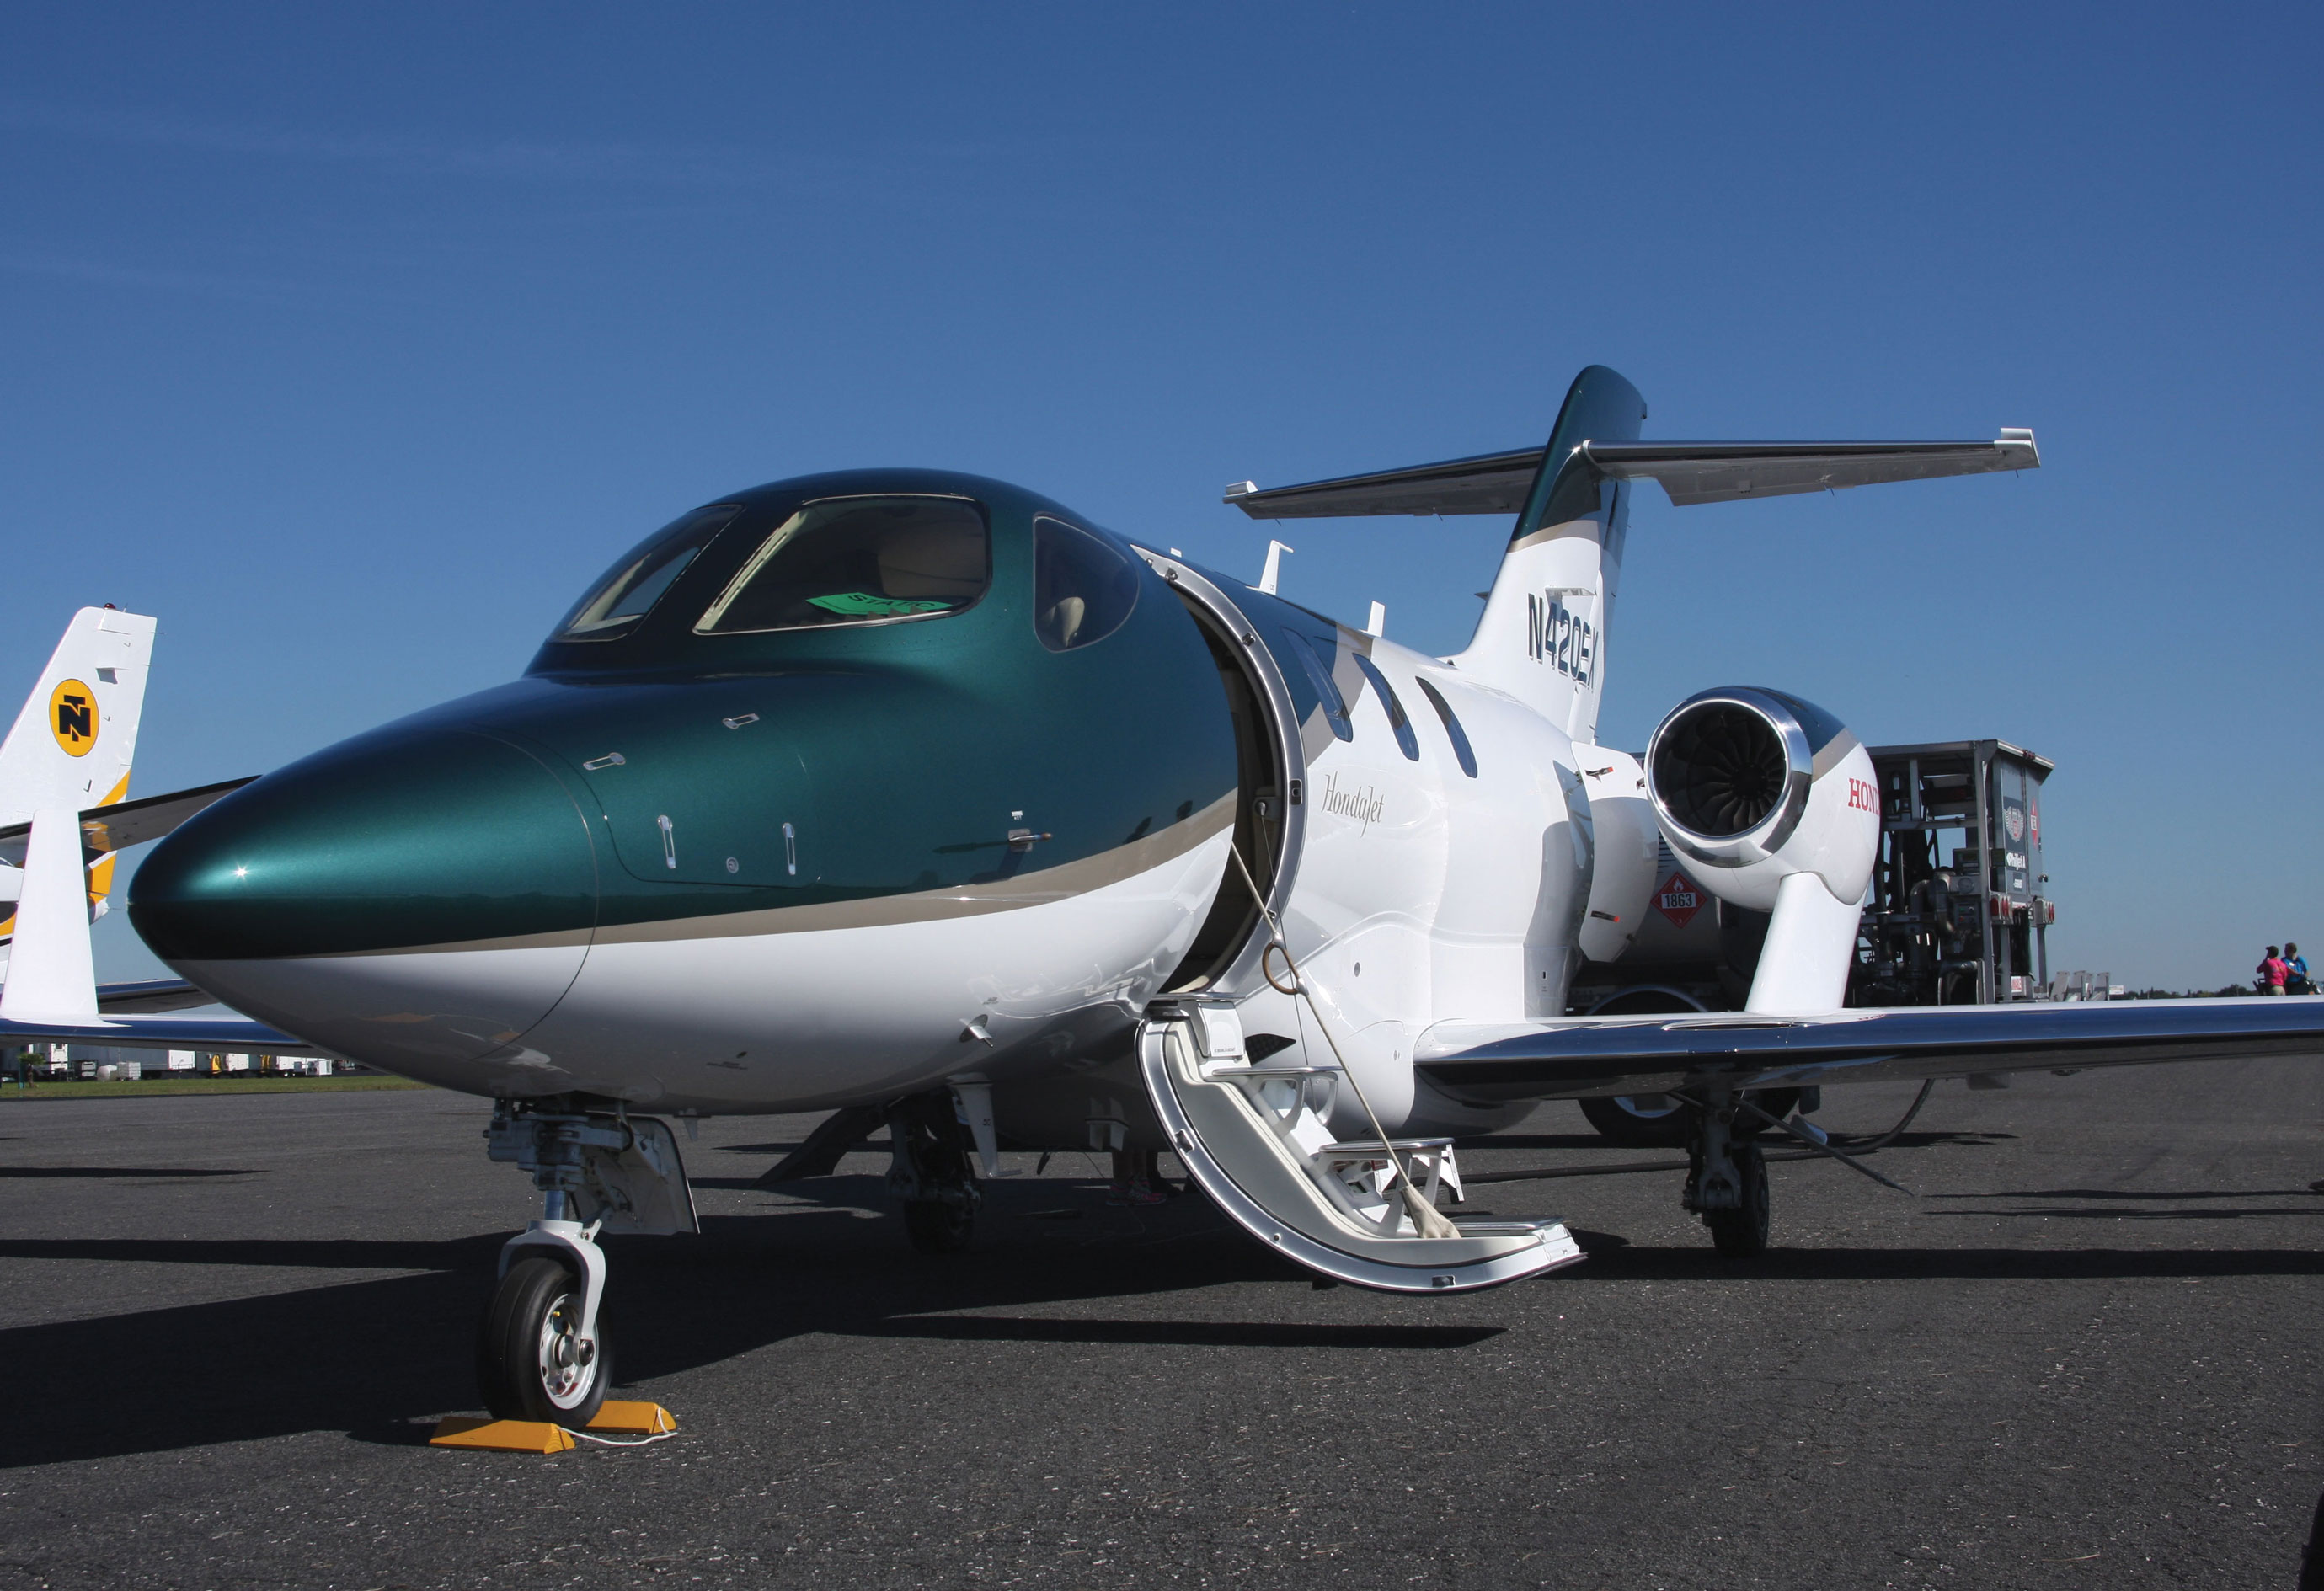 orlando helicopter with Honda Aircraft Gears Hondajet Entry Service 0 on Watch in addition Celine Dion further Blue Man Group moreover Brown Pelican Florida Everglades Tours likewise Do You Know What Today Is 16.